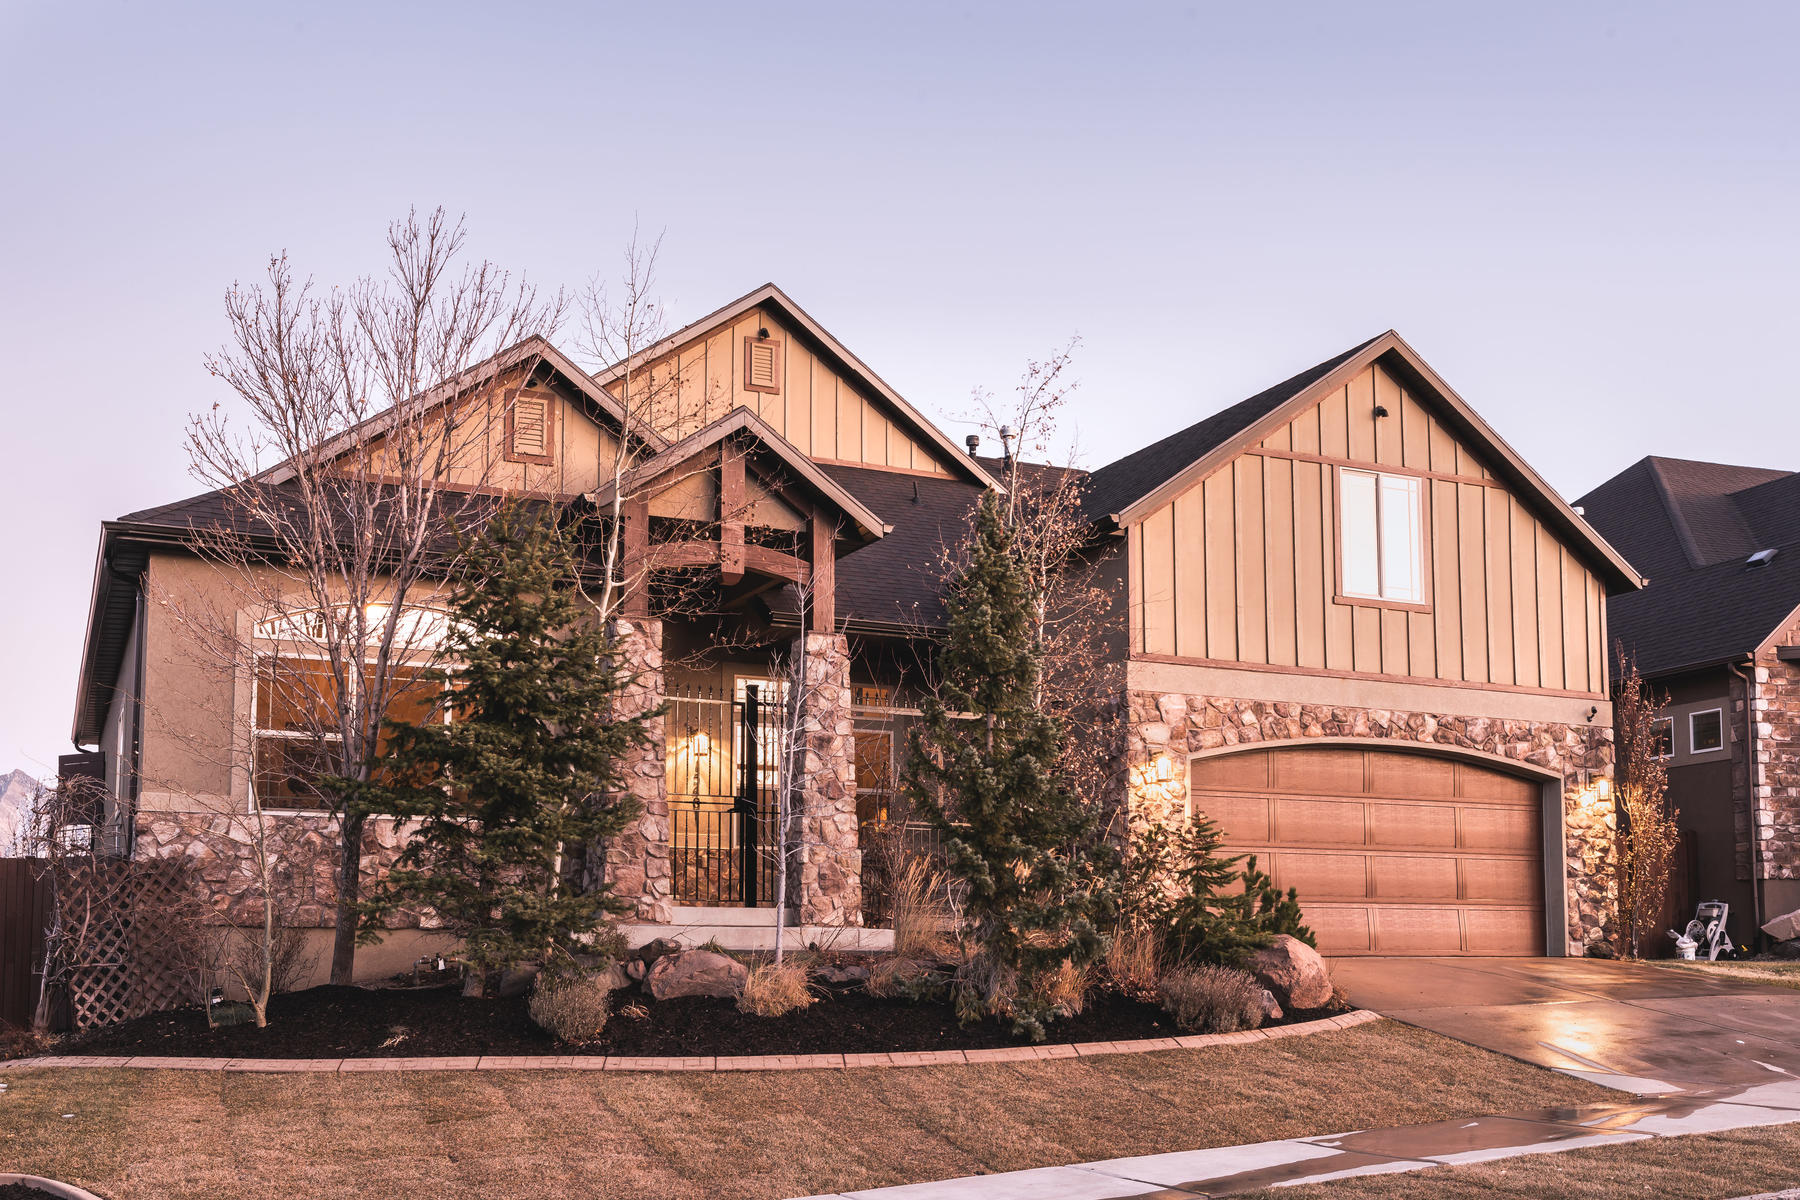 Single Family Homes for Sale at Main Floor Living At It's Finest 15401 S Eagle Crest Dr, Draper, Utah 84020 United States